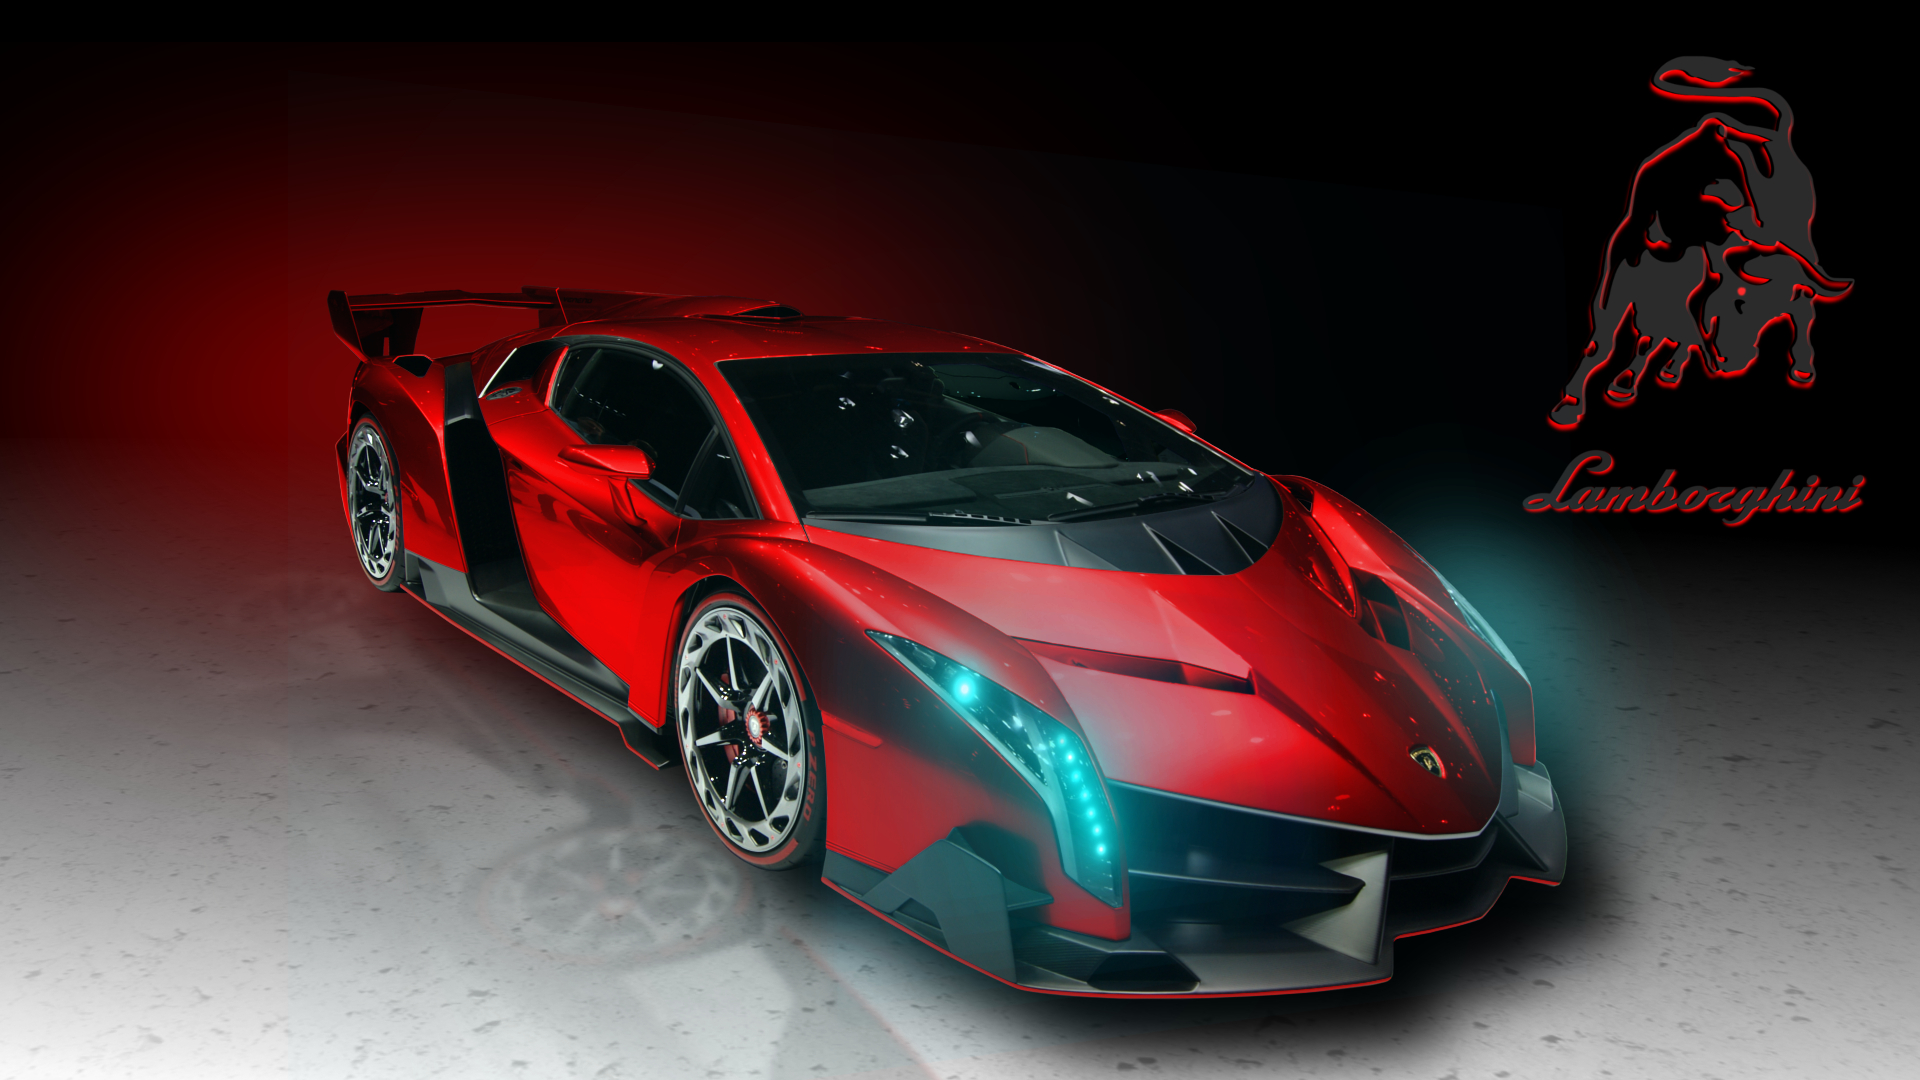 Lamborghini Veneno Rainbow Www Pixshark Com Images Galleries With A Bite